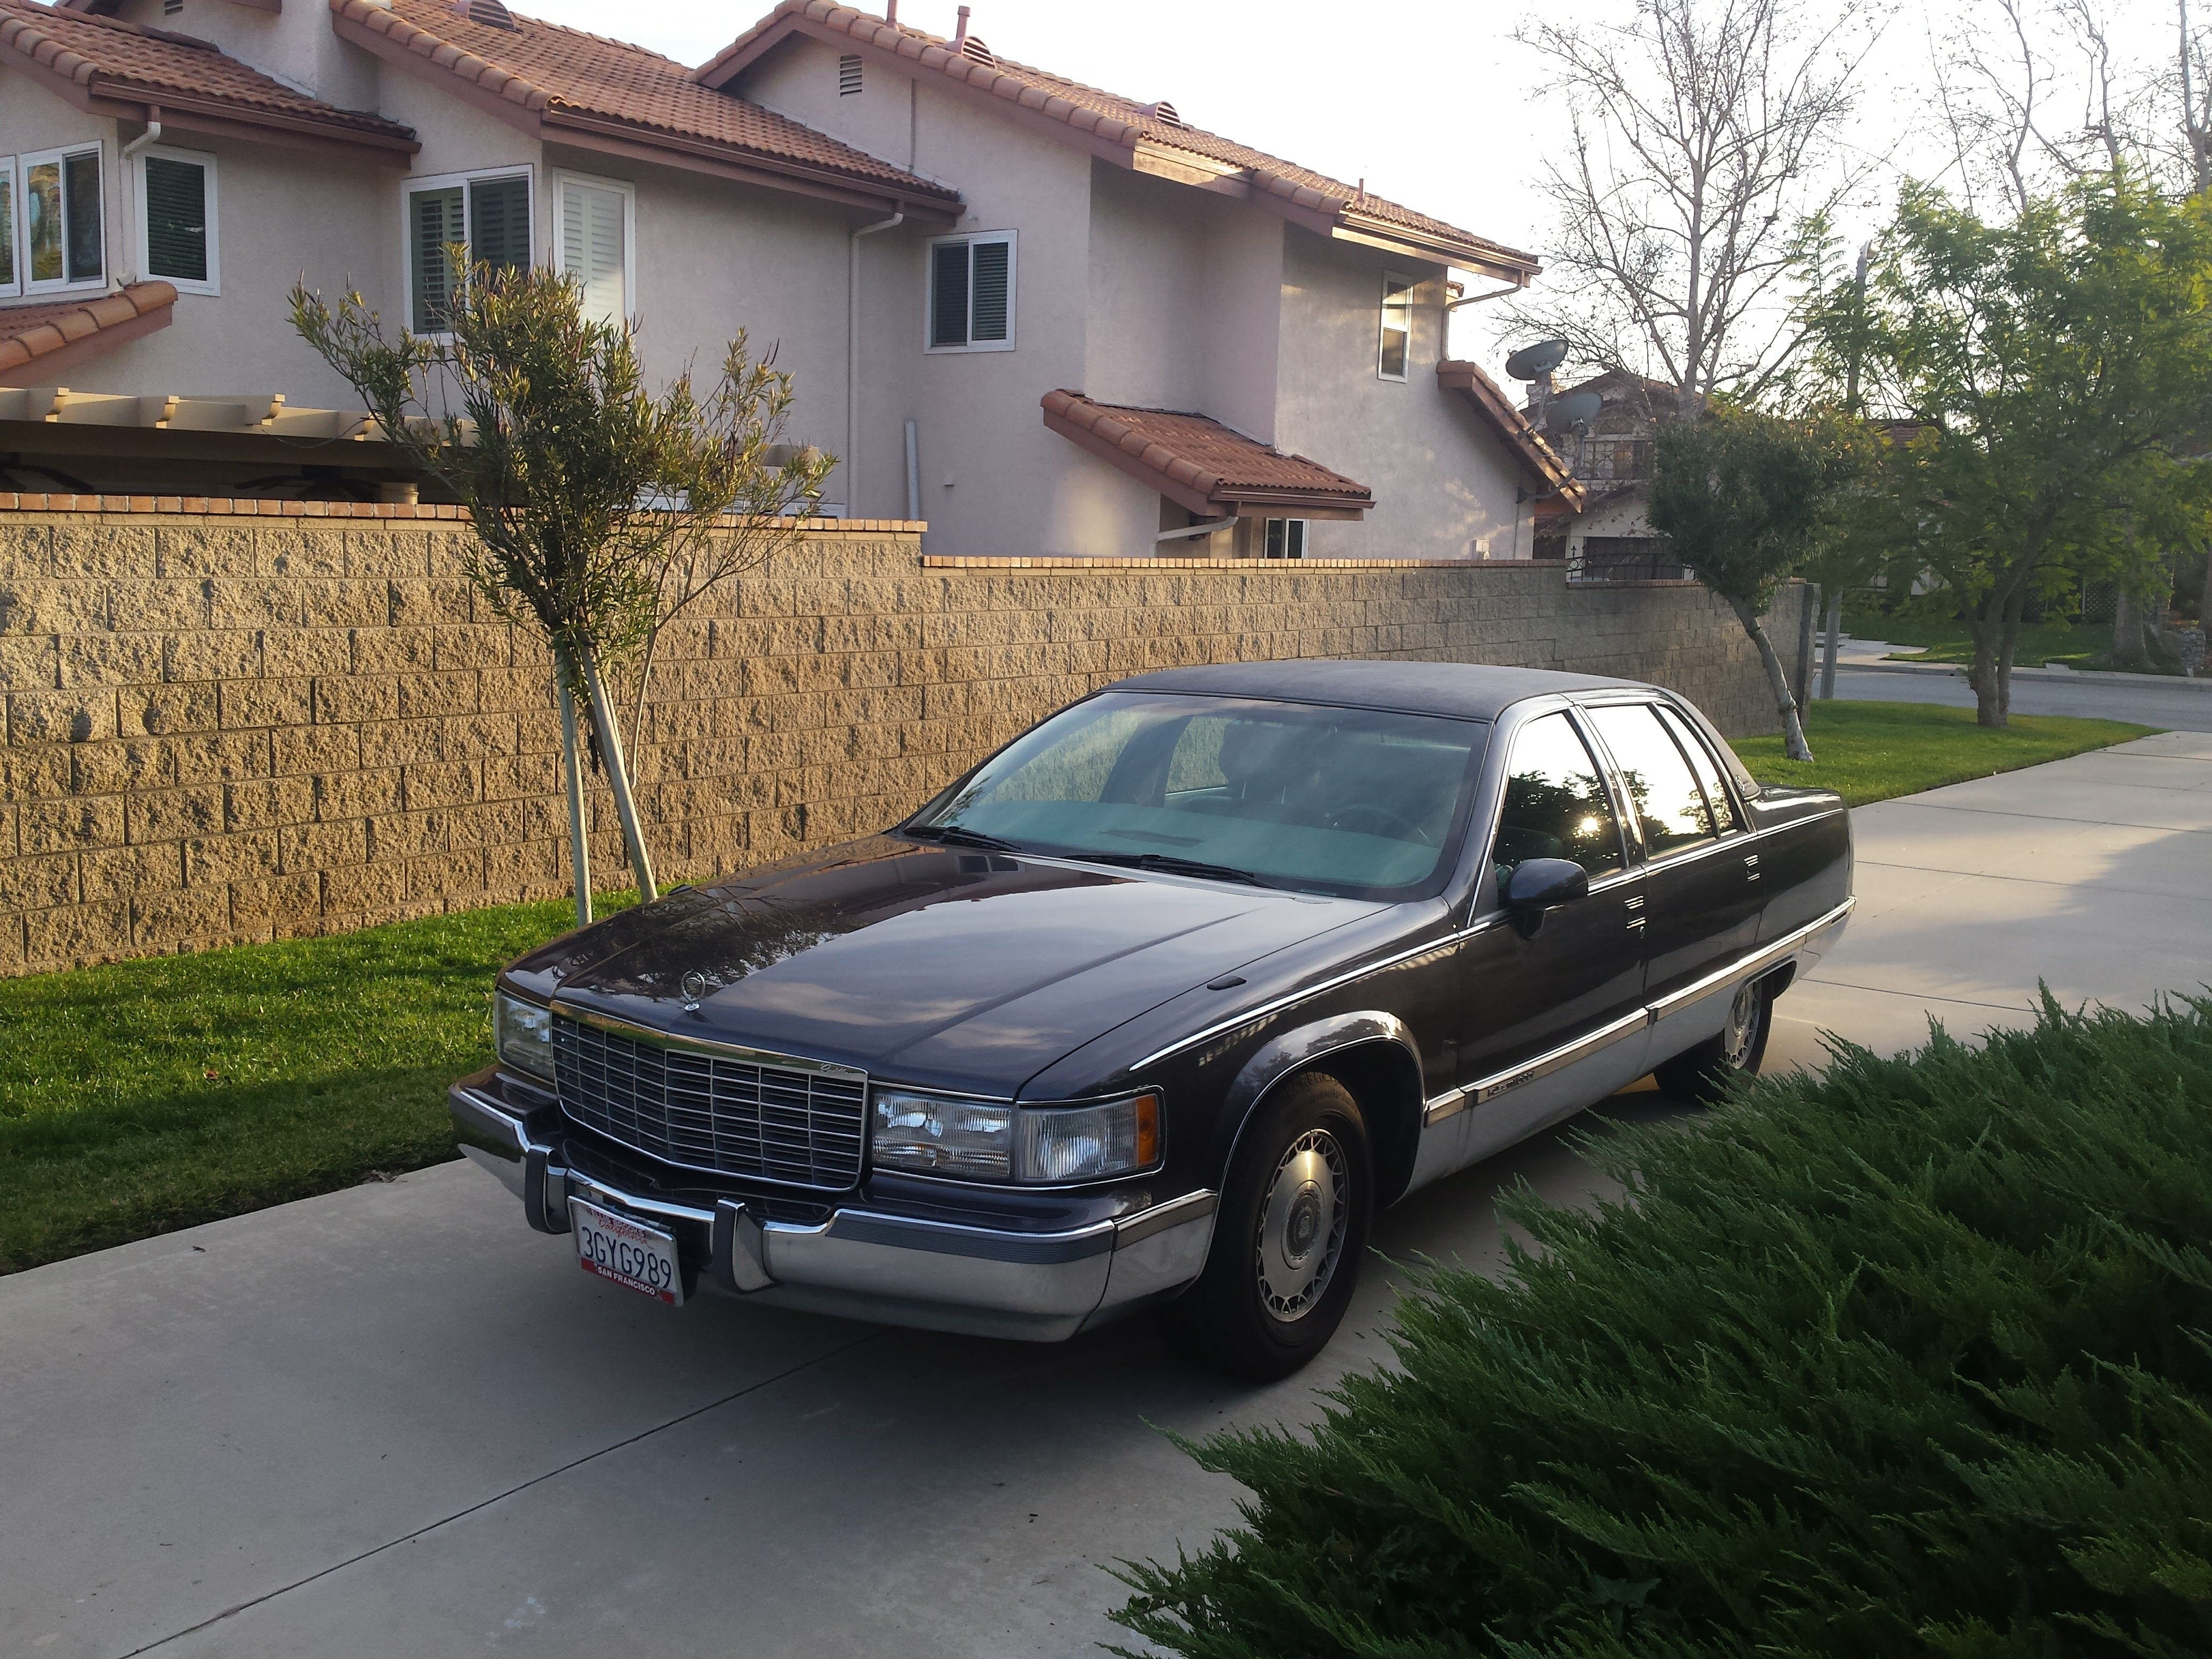 CC Outtake 1993 96 Cadillac Fleetwood Brougham – I Could Even